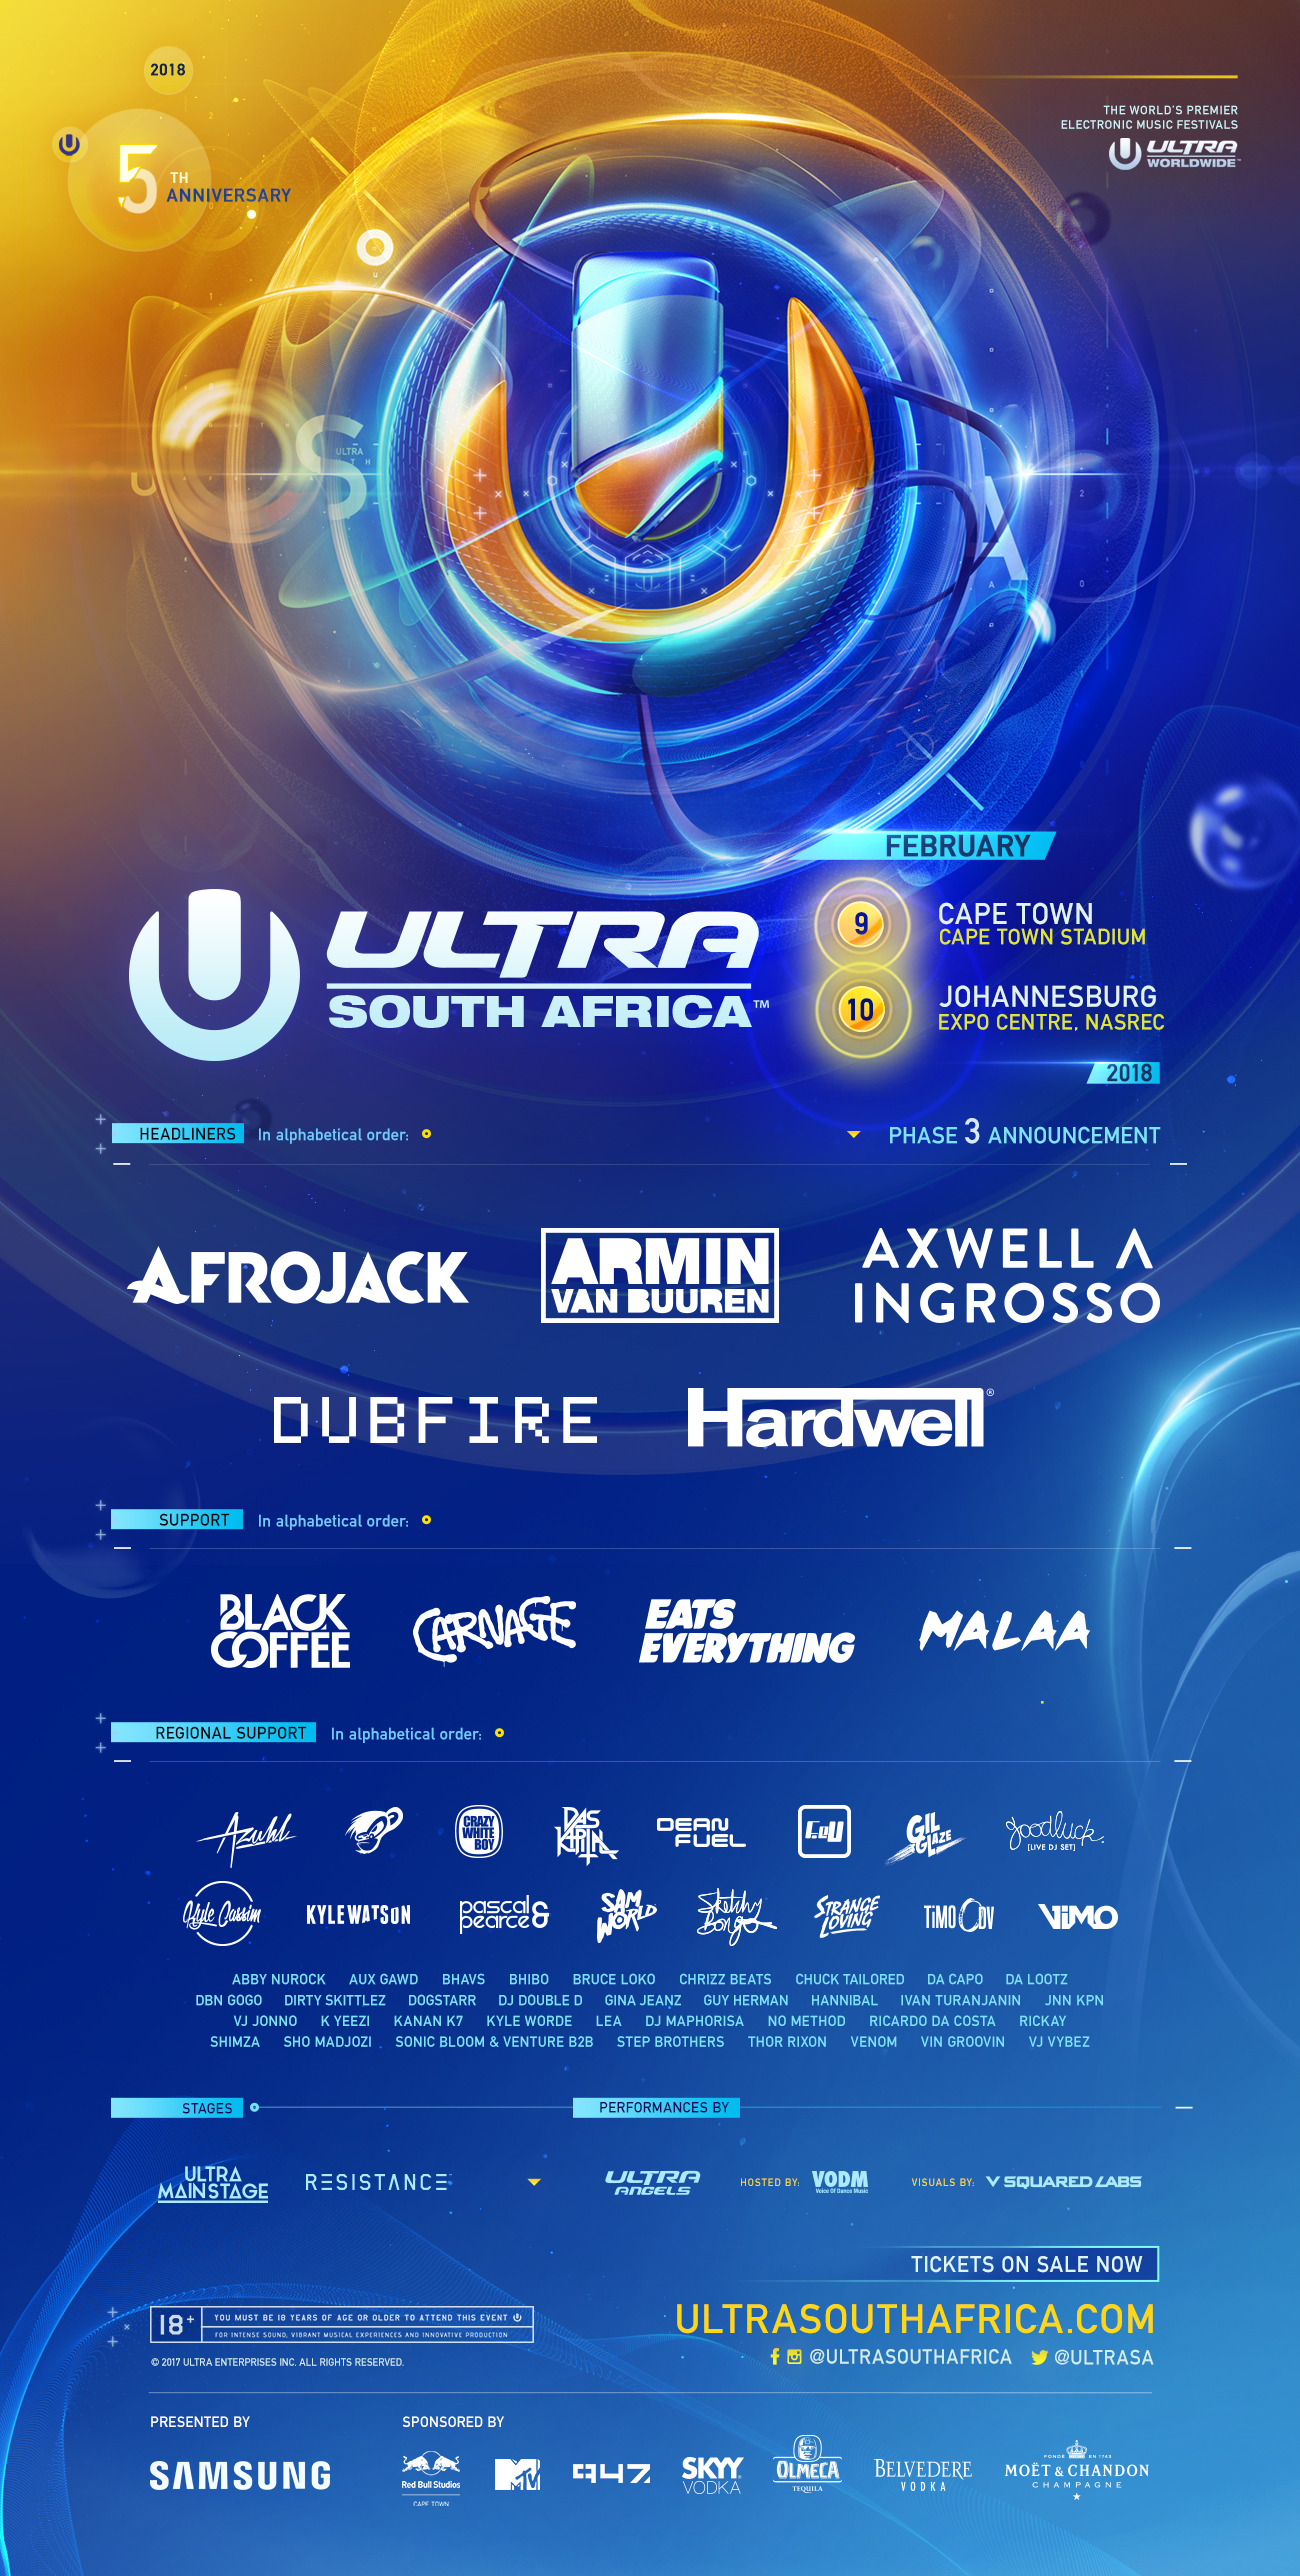 @UltraSA Finalizes Fifth Year Lineup #SouthAfrica 9-10 Feb 2018 #UltraSA2018